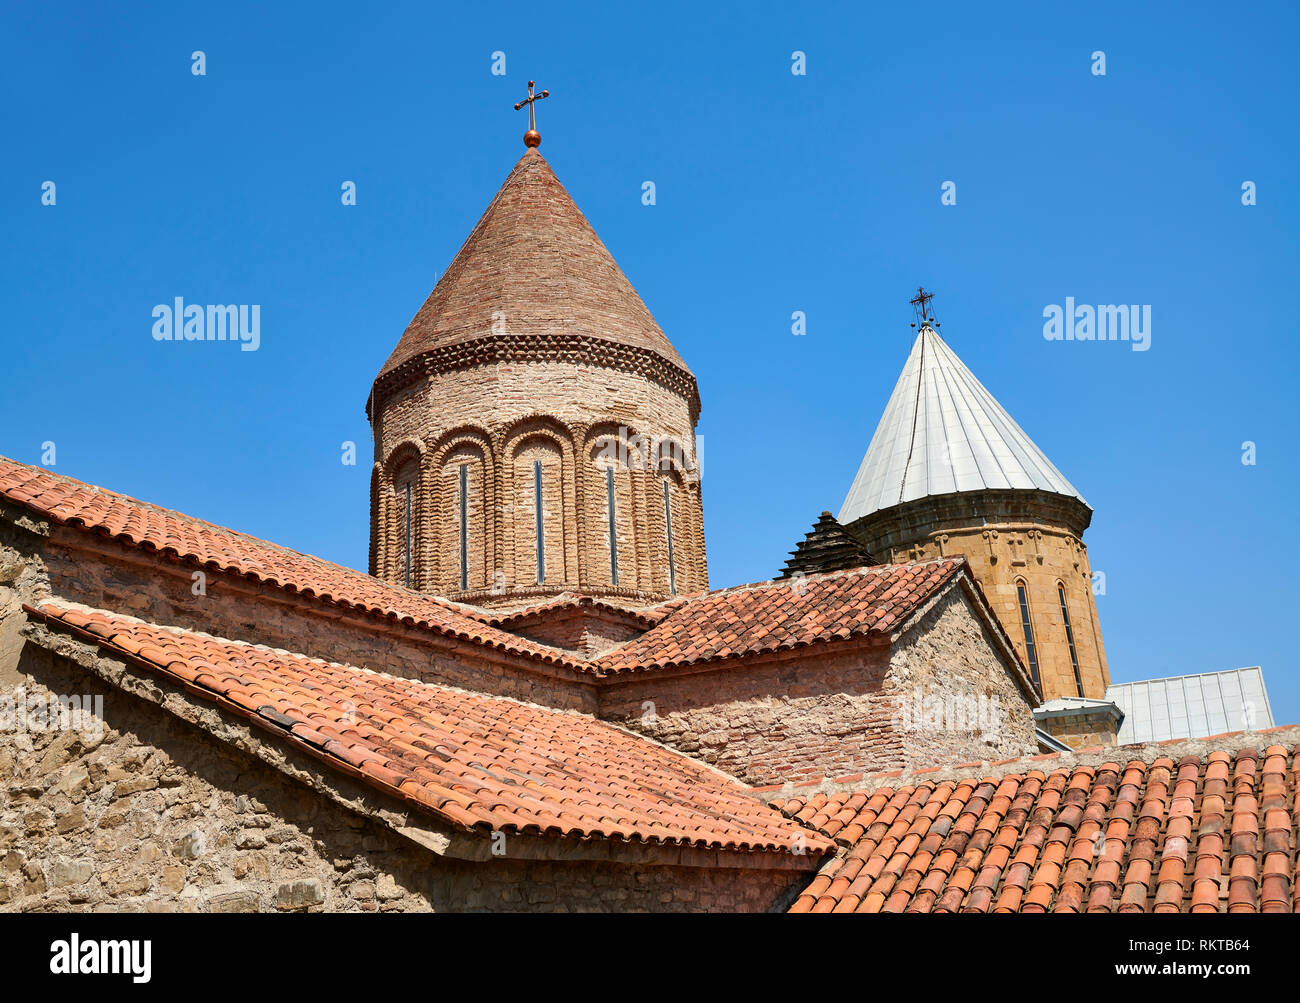 Pictures & images of the Georgian Orthodox church of the Virgin, early 17th century, Ananuri castle complex, Georgia (country).  Ananuri castle is sit - Stock Image